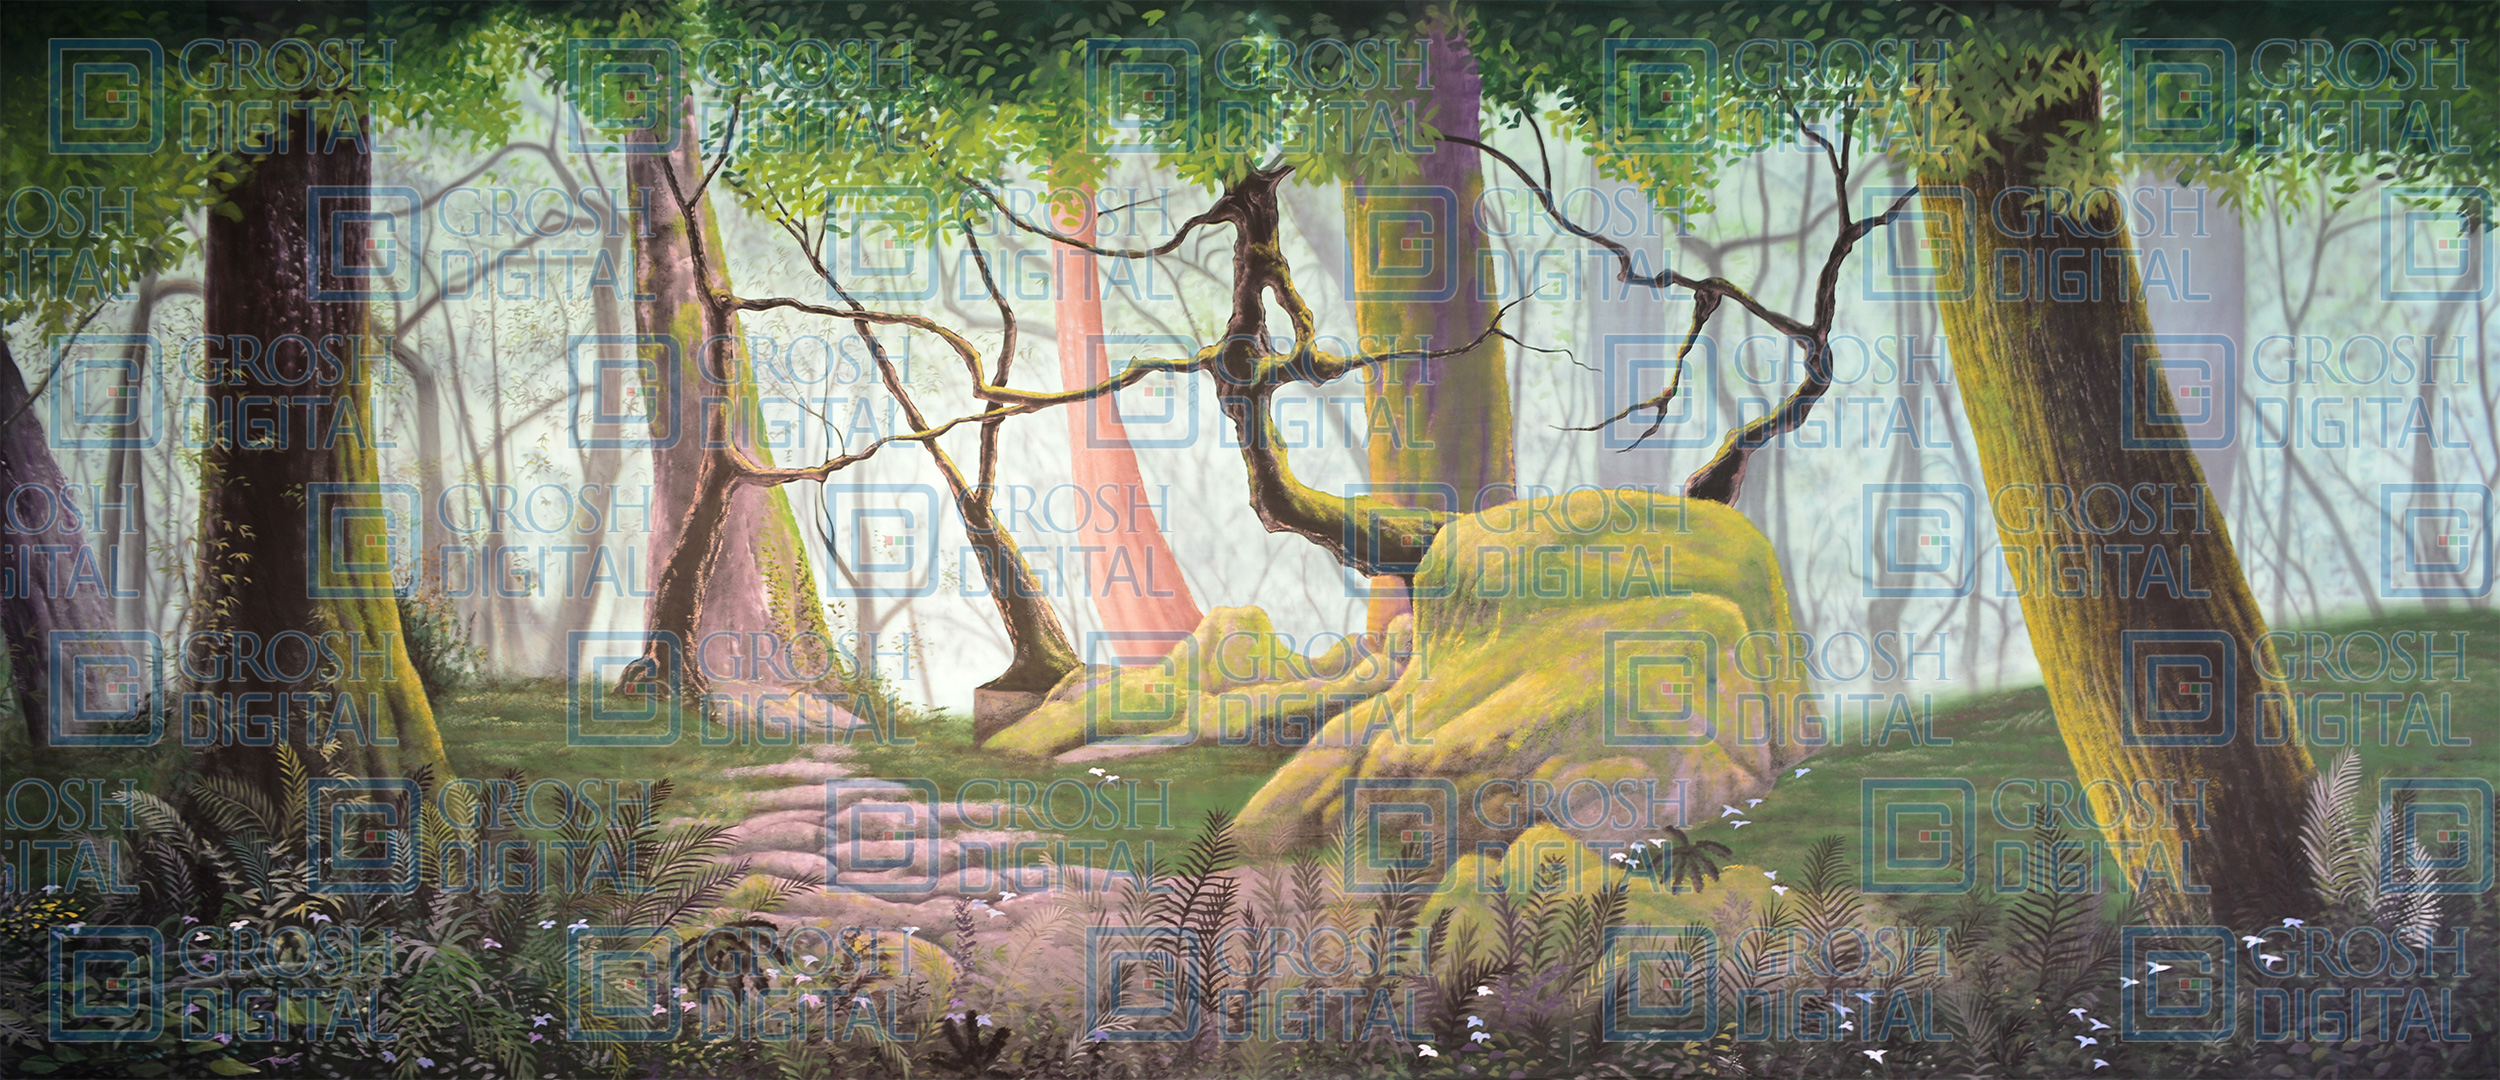 Forest Panel 4 Projected Backdrop for Addams Family, Beauty and the Beast, Big Fish, Brigadoon, Cinderella, Forest, Giselle, Lion King, Madagascar, Peter Pan, Seven Brides for Seven Brothers, Shrek, Sleeping Beauty, Wizard of Oz